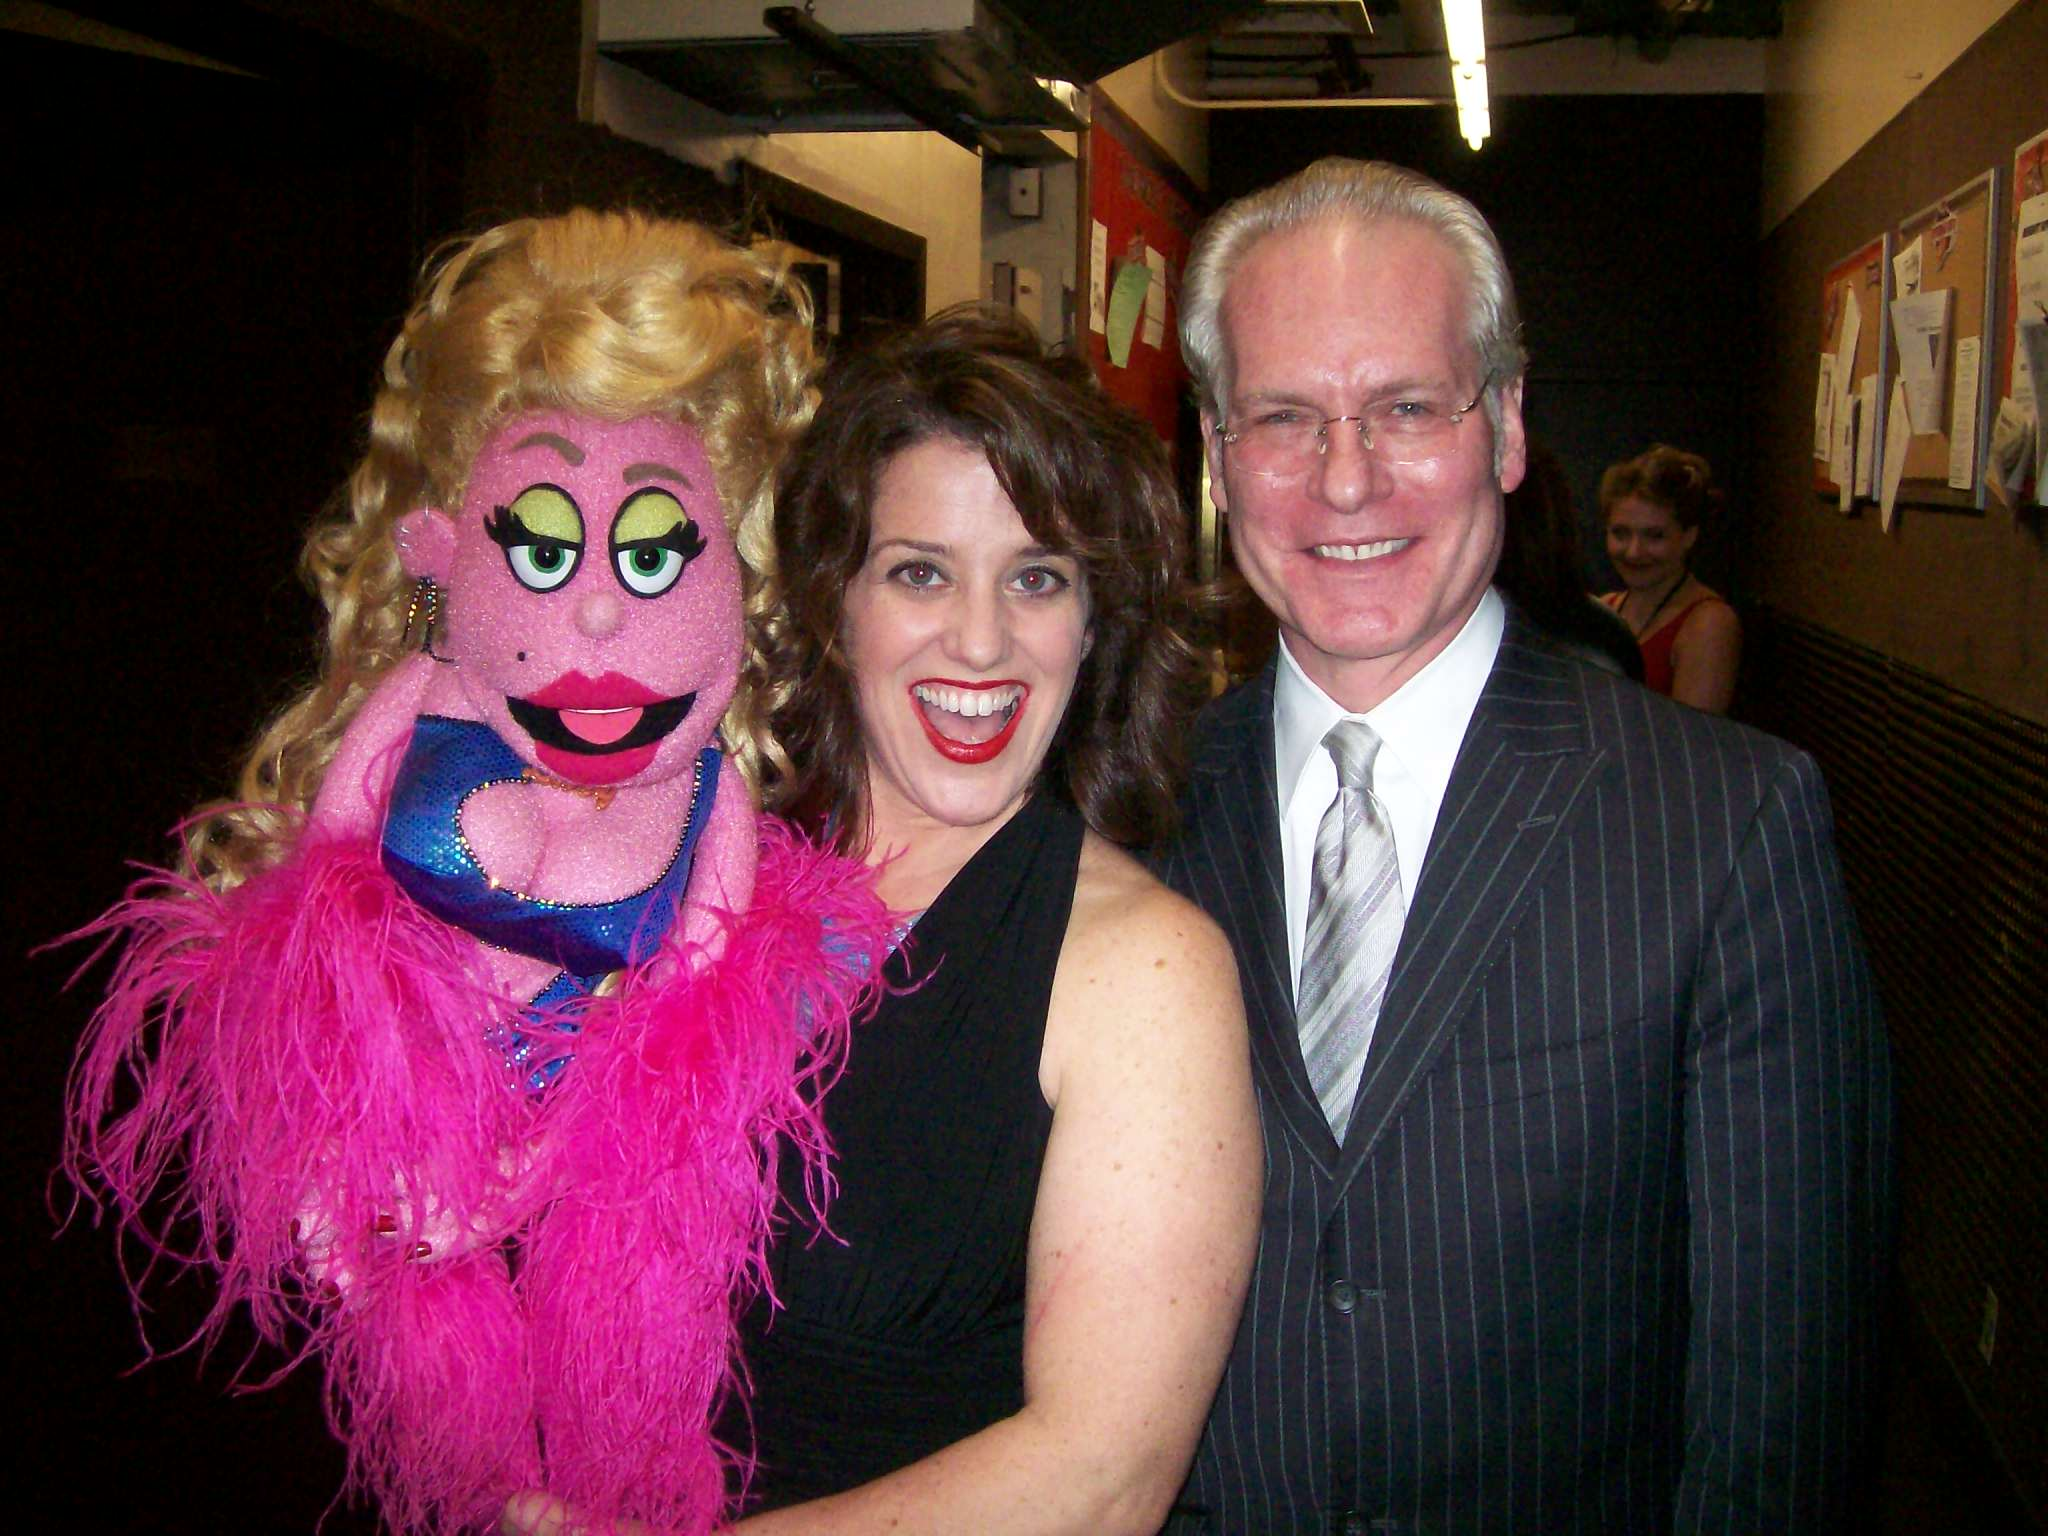 Backstage with Lucy and Tim Gunn